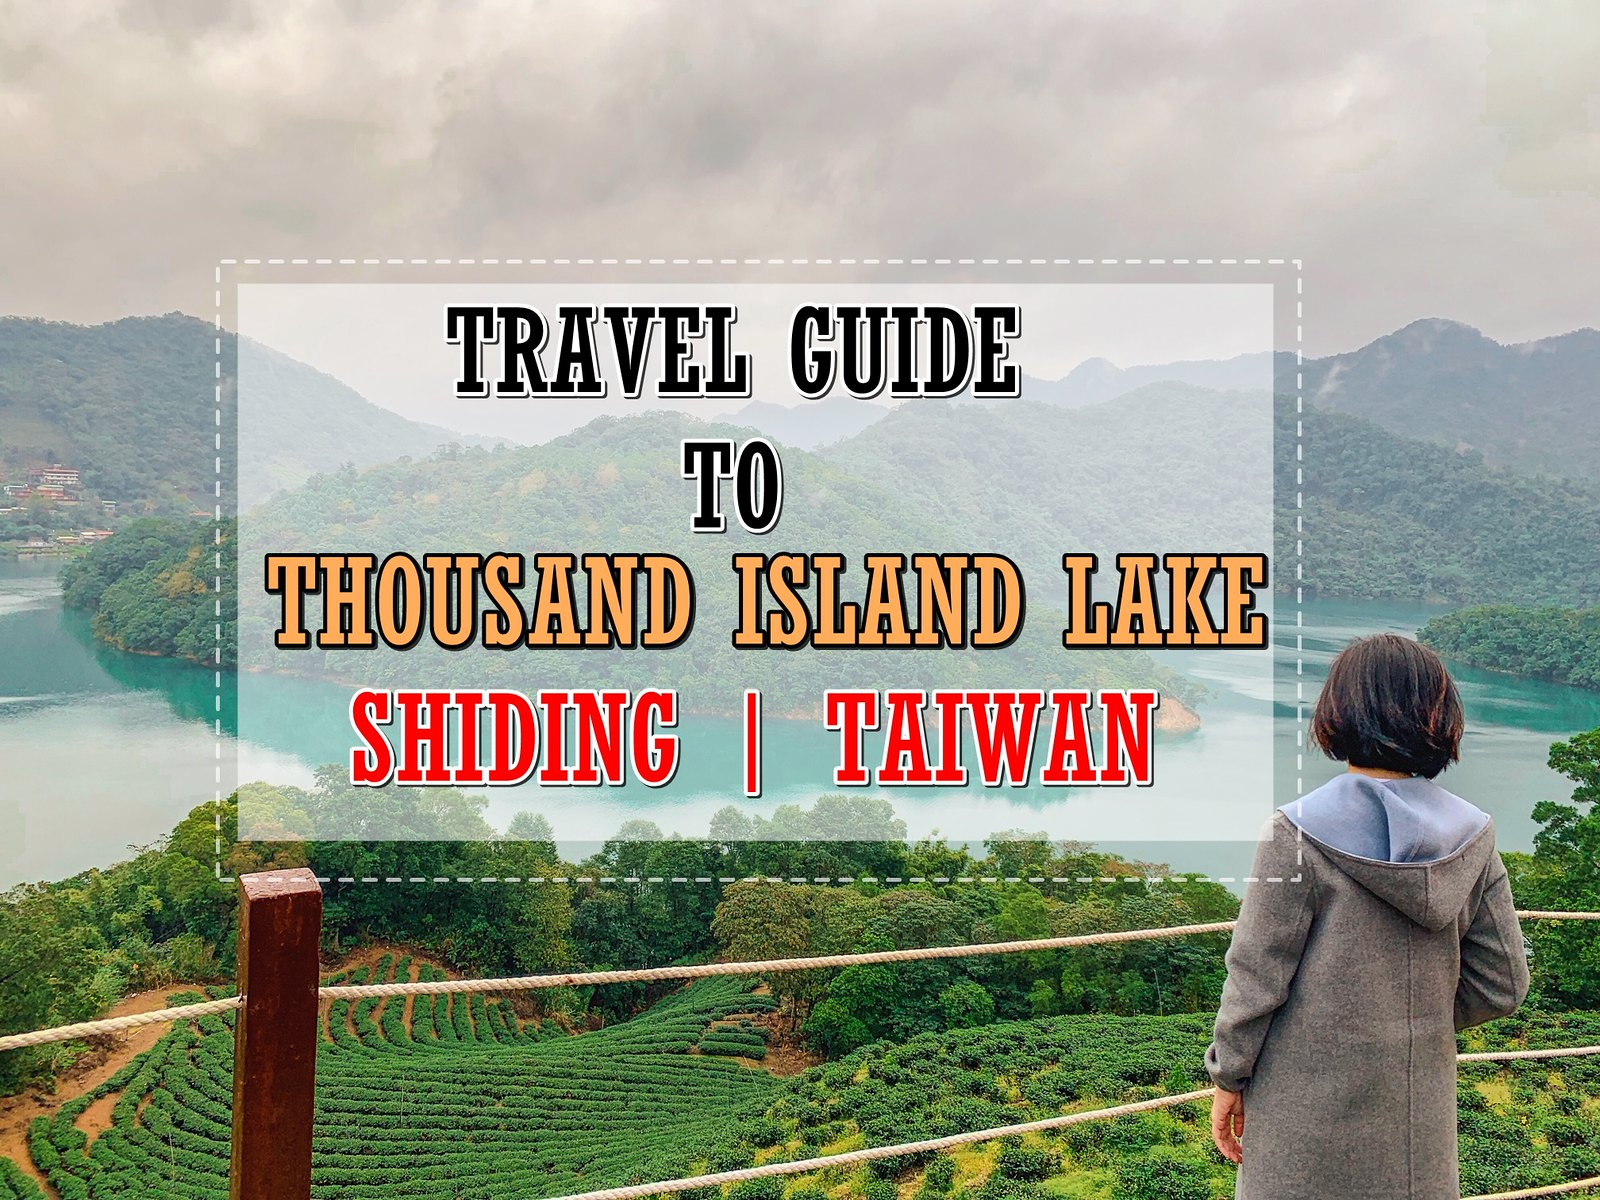 [TAIWAN TRAVELS] A Half Day Trip to Shiding Thousand Island Lake (石碇千島湖 ) from Taipei- The Hidden Gem